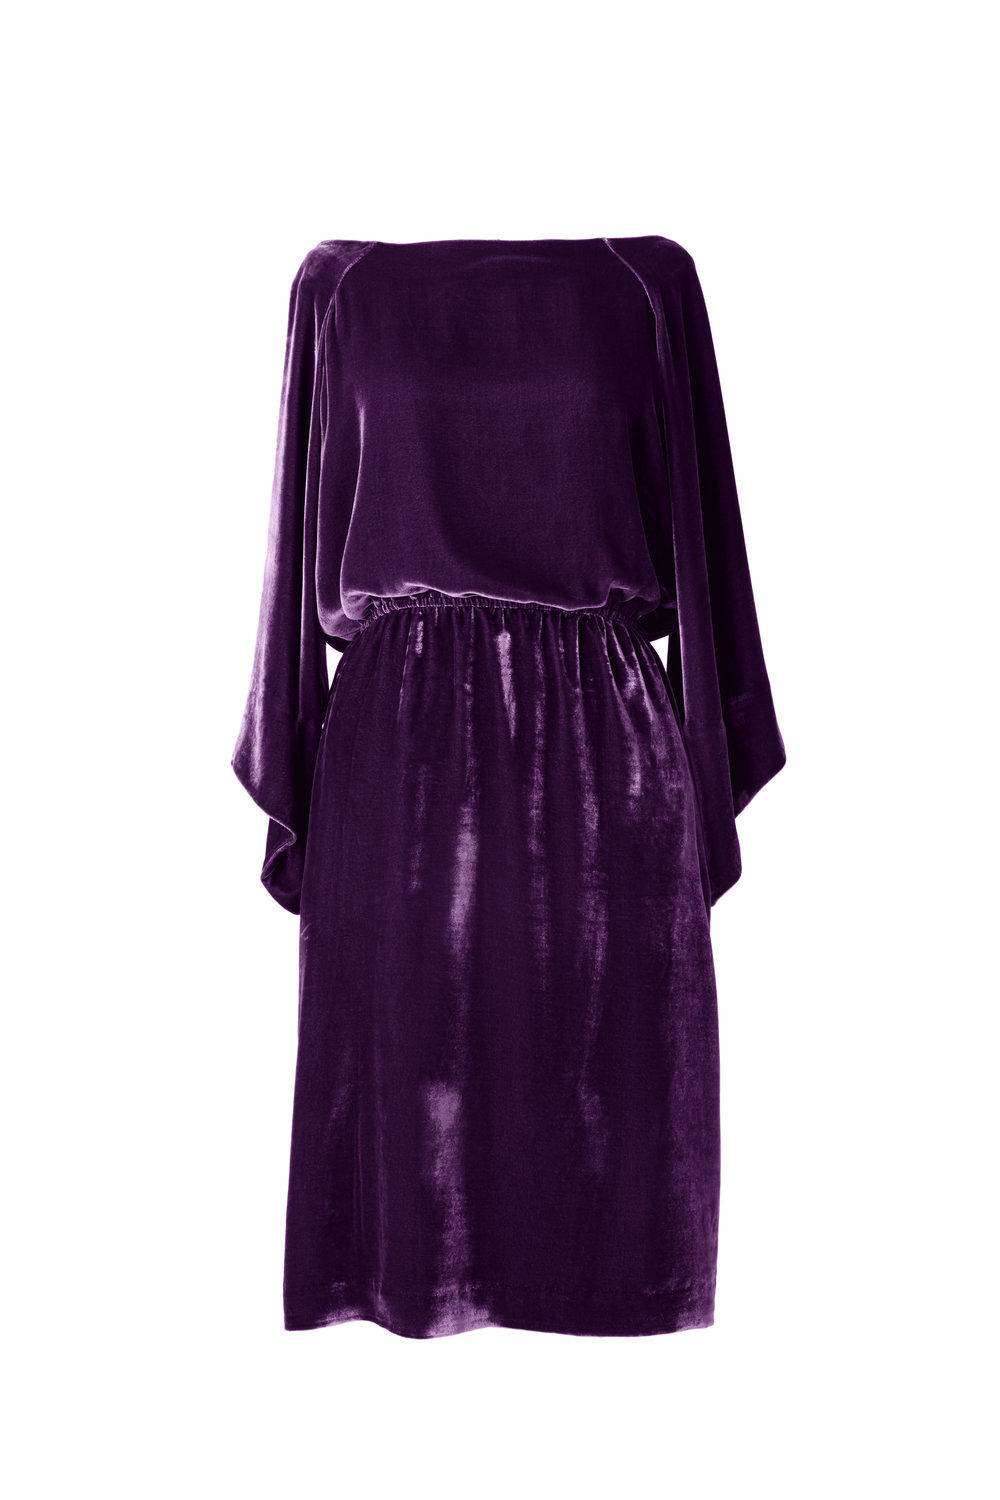 Erika 3303 Purple Velvet